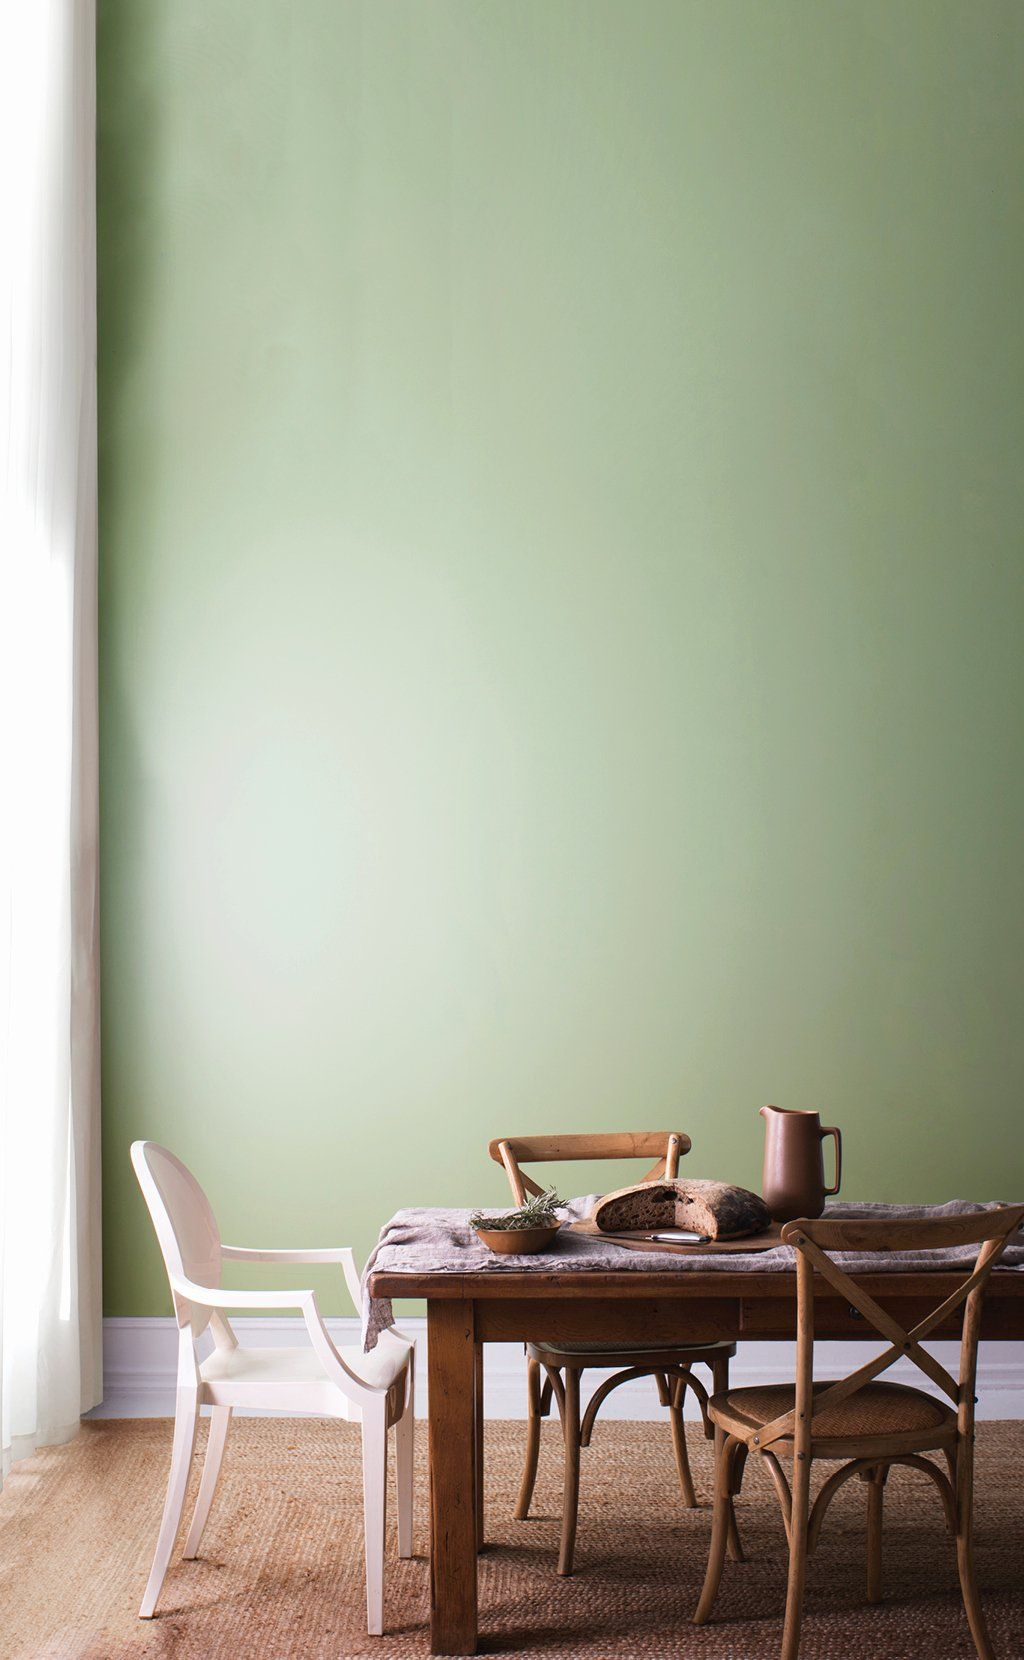 Easy Living Paint Color Chart Beautiful Benjamin Moore Paints Exterior Stains In 2020 Green Walls Living Room Green Room Colors Dining Room Colors #paint #living #room #pictures